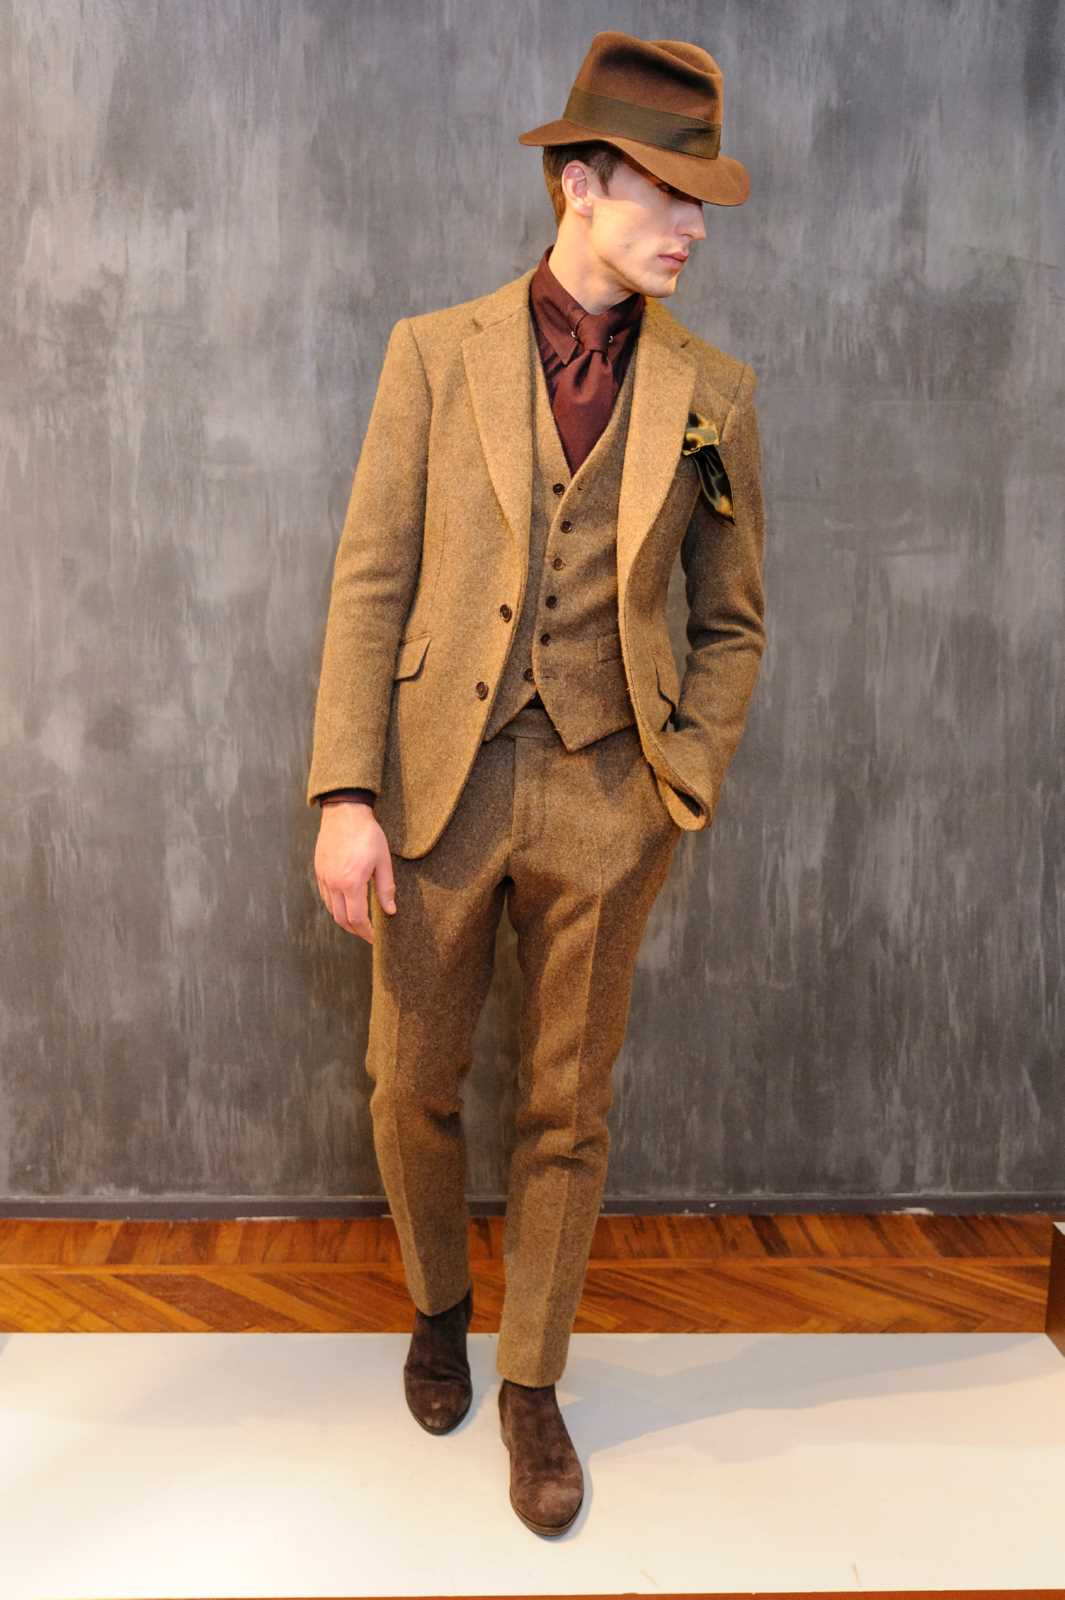 Cuadros De Tiziano Cifonelli Fall-winter 2018-19 Menswear Collection | Male